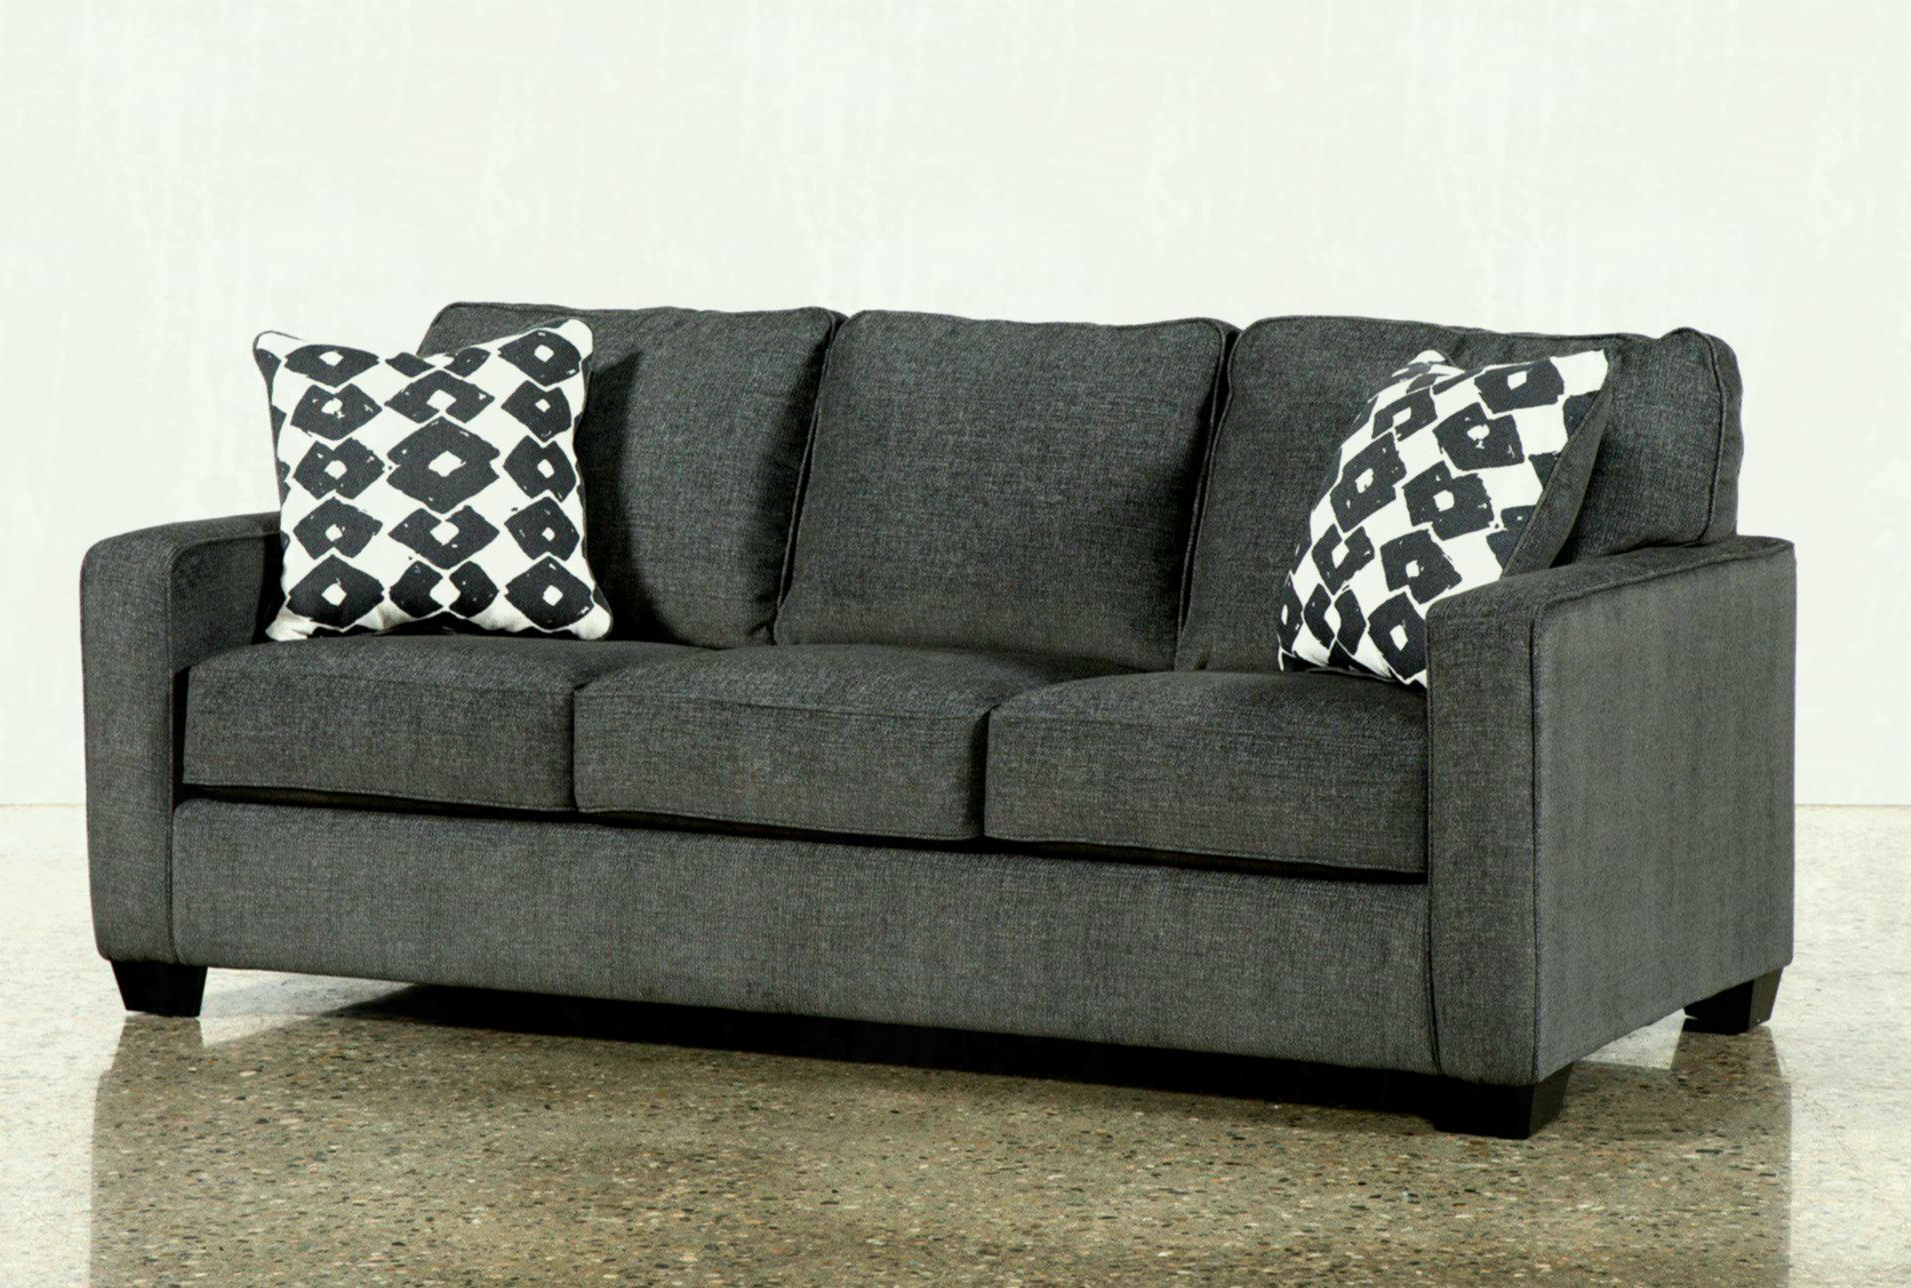 Latest Turdur 2 Piece Sectionals With Laf Loveseat Throughout Turdur Sofa Living Spaces – Garage Plans With Living Space One Level (Gallery 20 of 20)